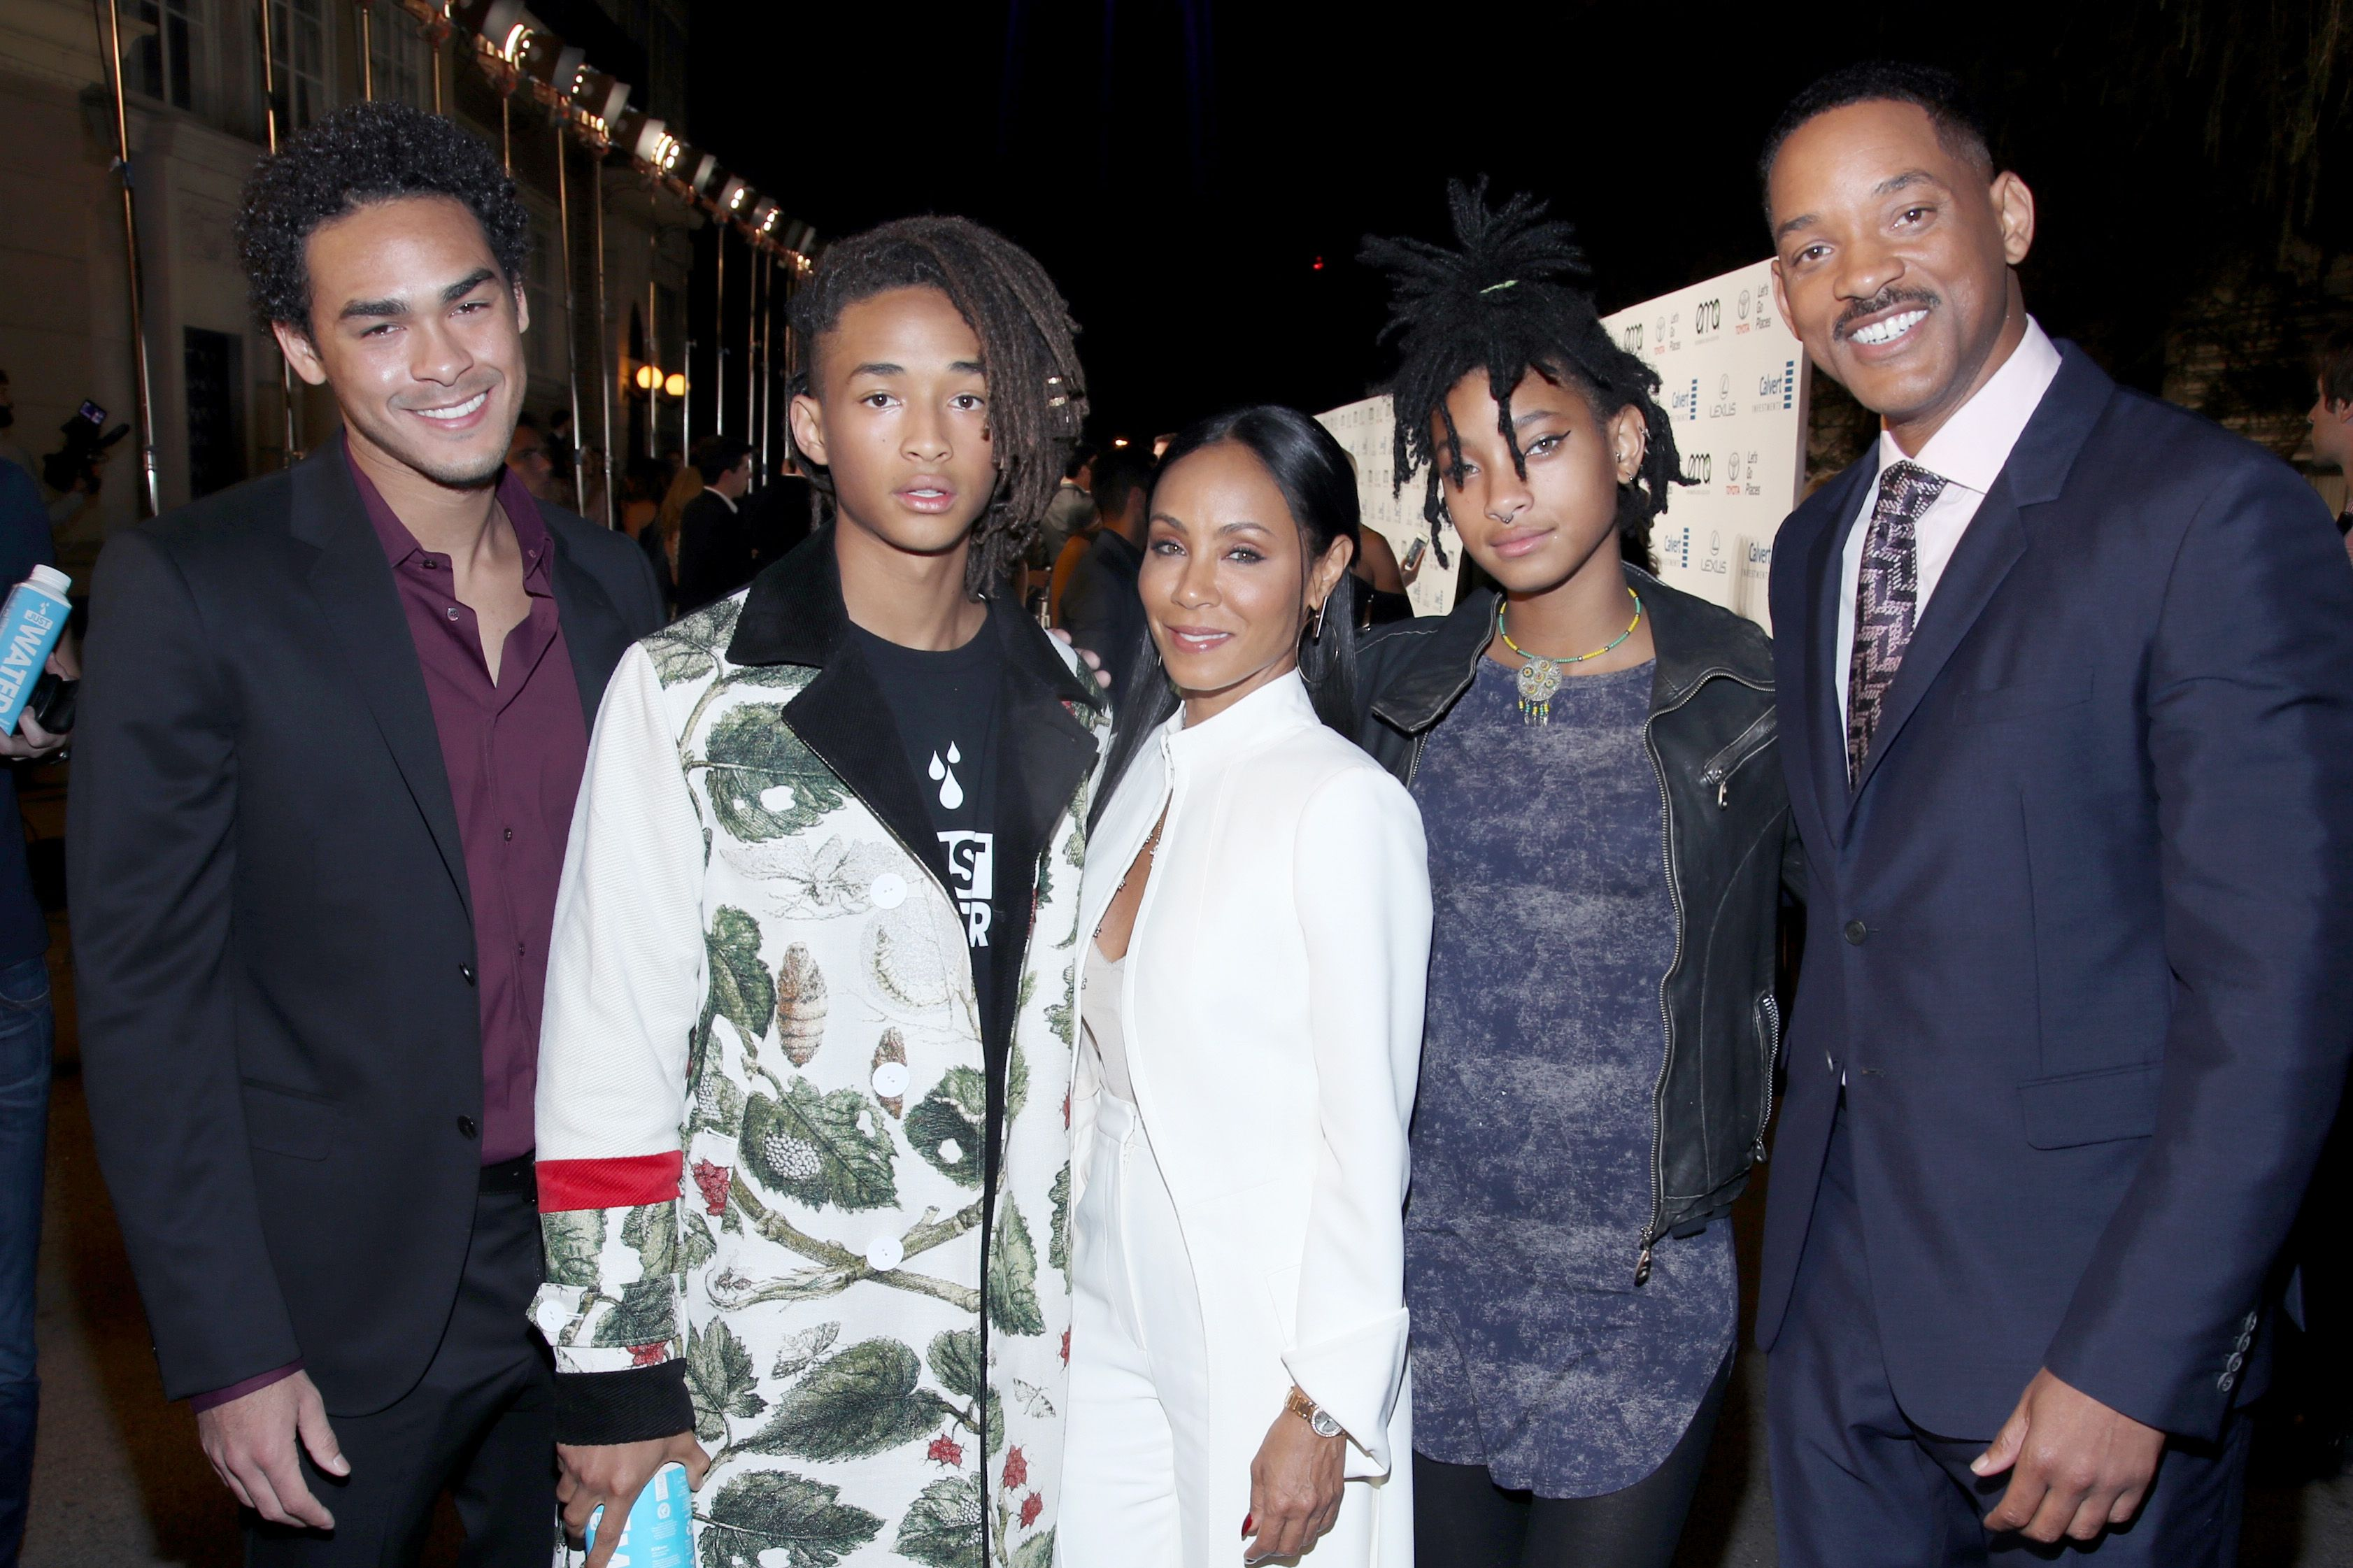 Trey Smith, Jaden Smith, Jada Pinkett-Smith, Willow Smith and Will Smith attend the Environmental Media Association 26th Annual EMA Awards on October 22, 2016. | Photo: Getty Images